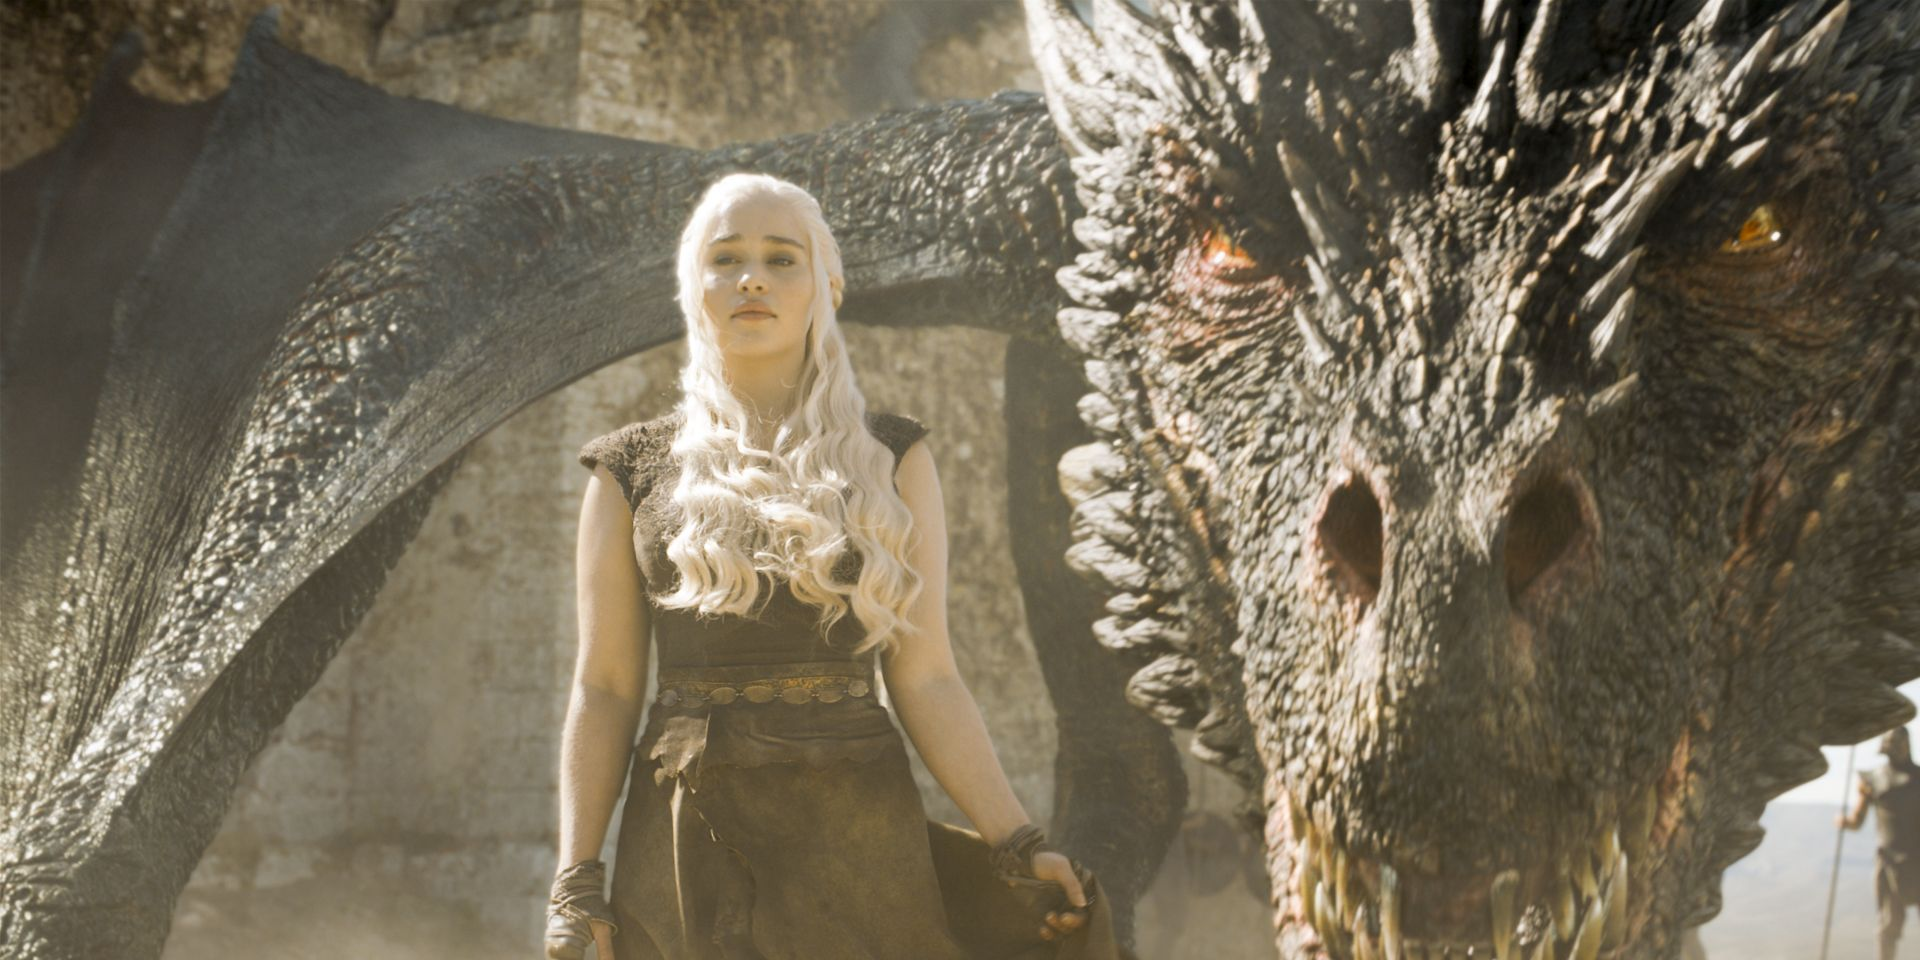 Daenerys and Drogon in Game of Thrones s06e09, 'Battle of the Bastards'